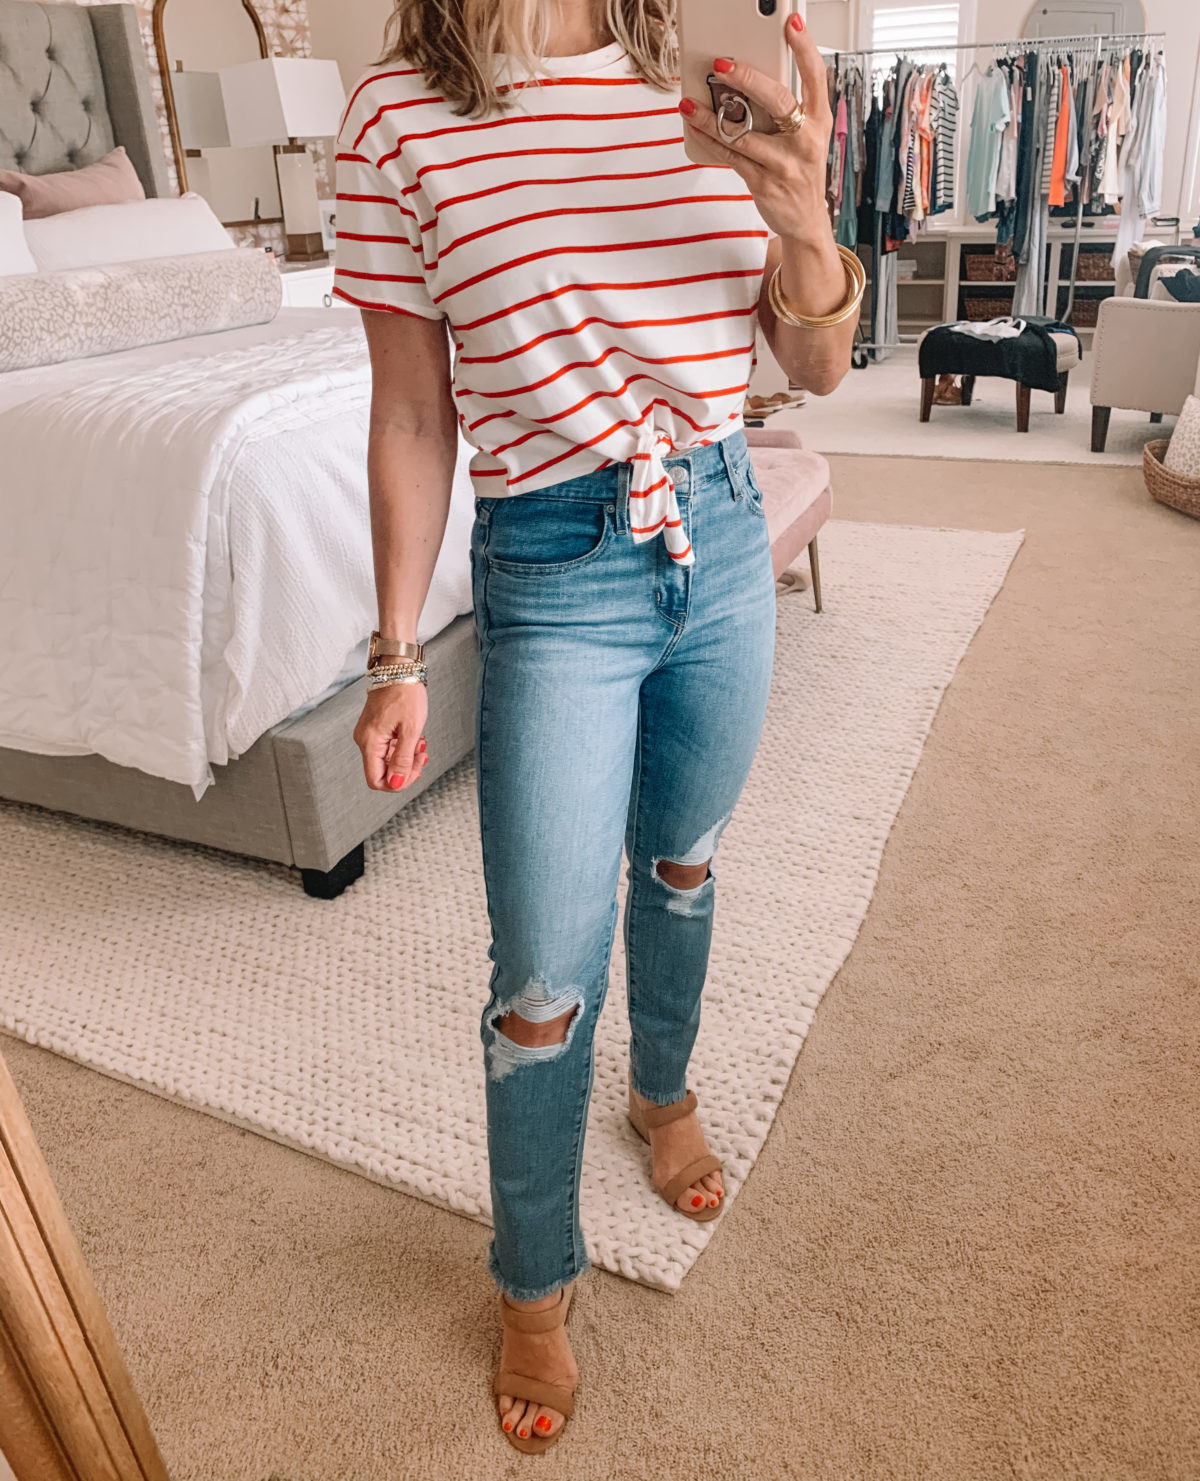 Amazon Fashion Finds, Striped Tie Front Top, Jeans, Sandals